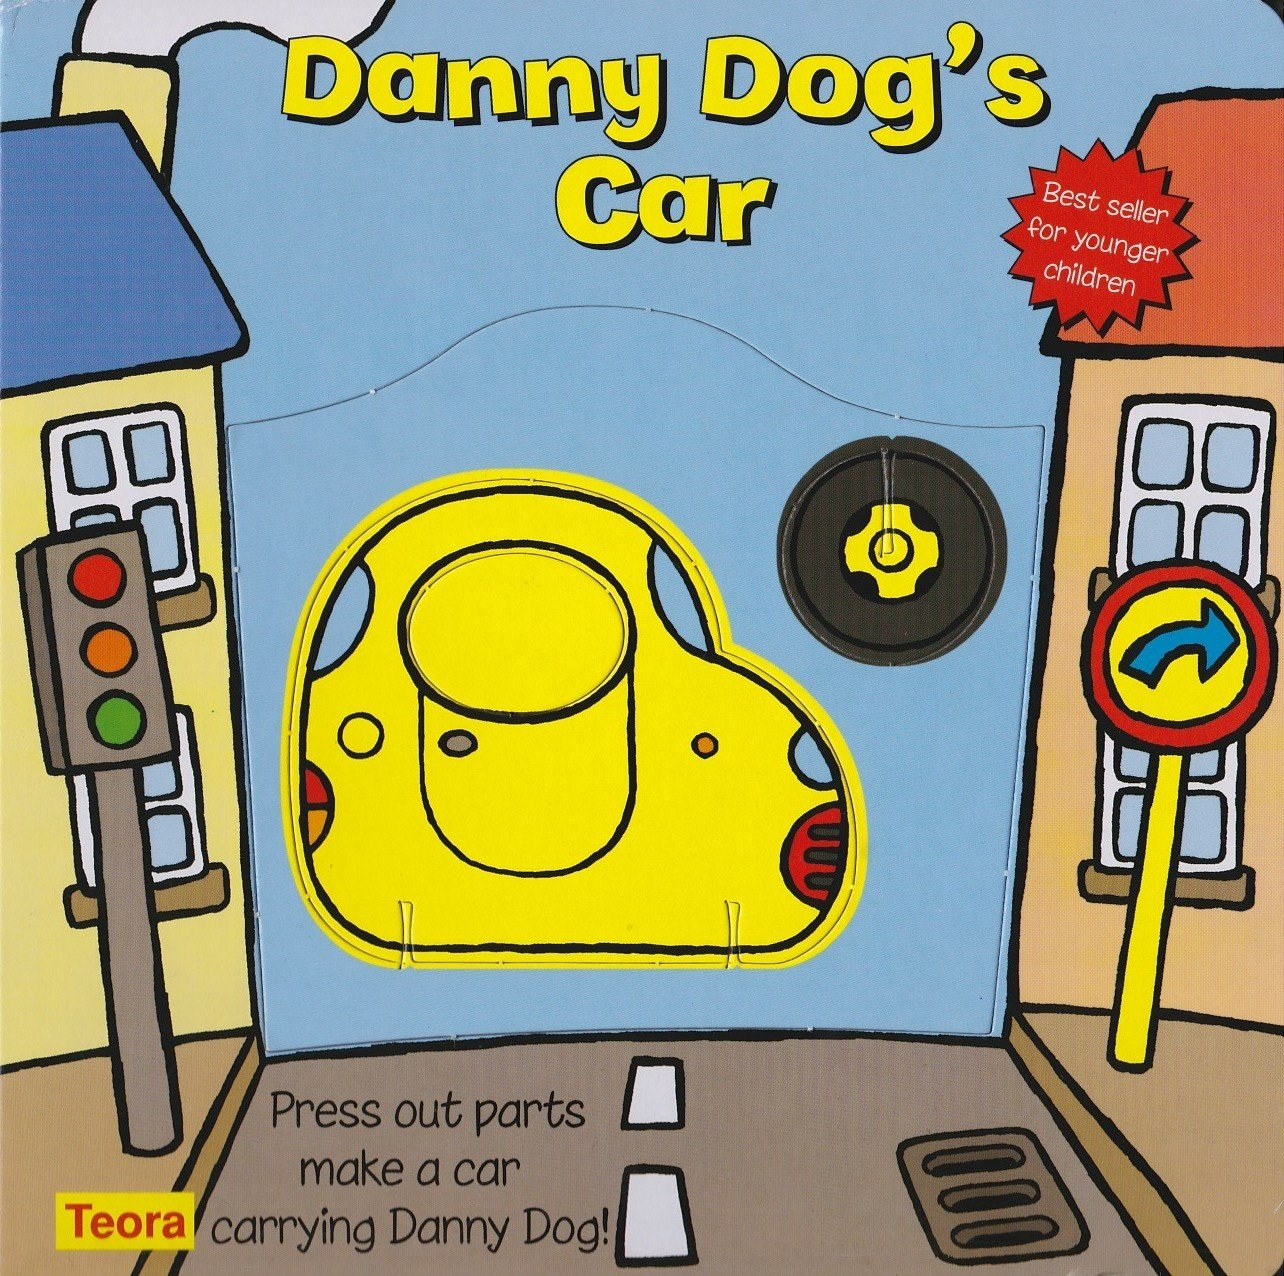 Download Danny Dog's Car: Press Out Parts Make a Car Carrying Danny Dog! (Toddler Make and Play) pdf